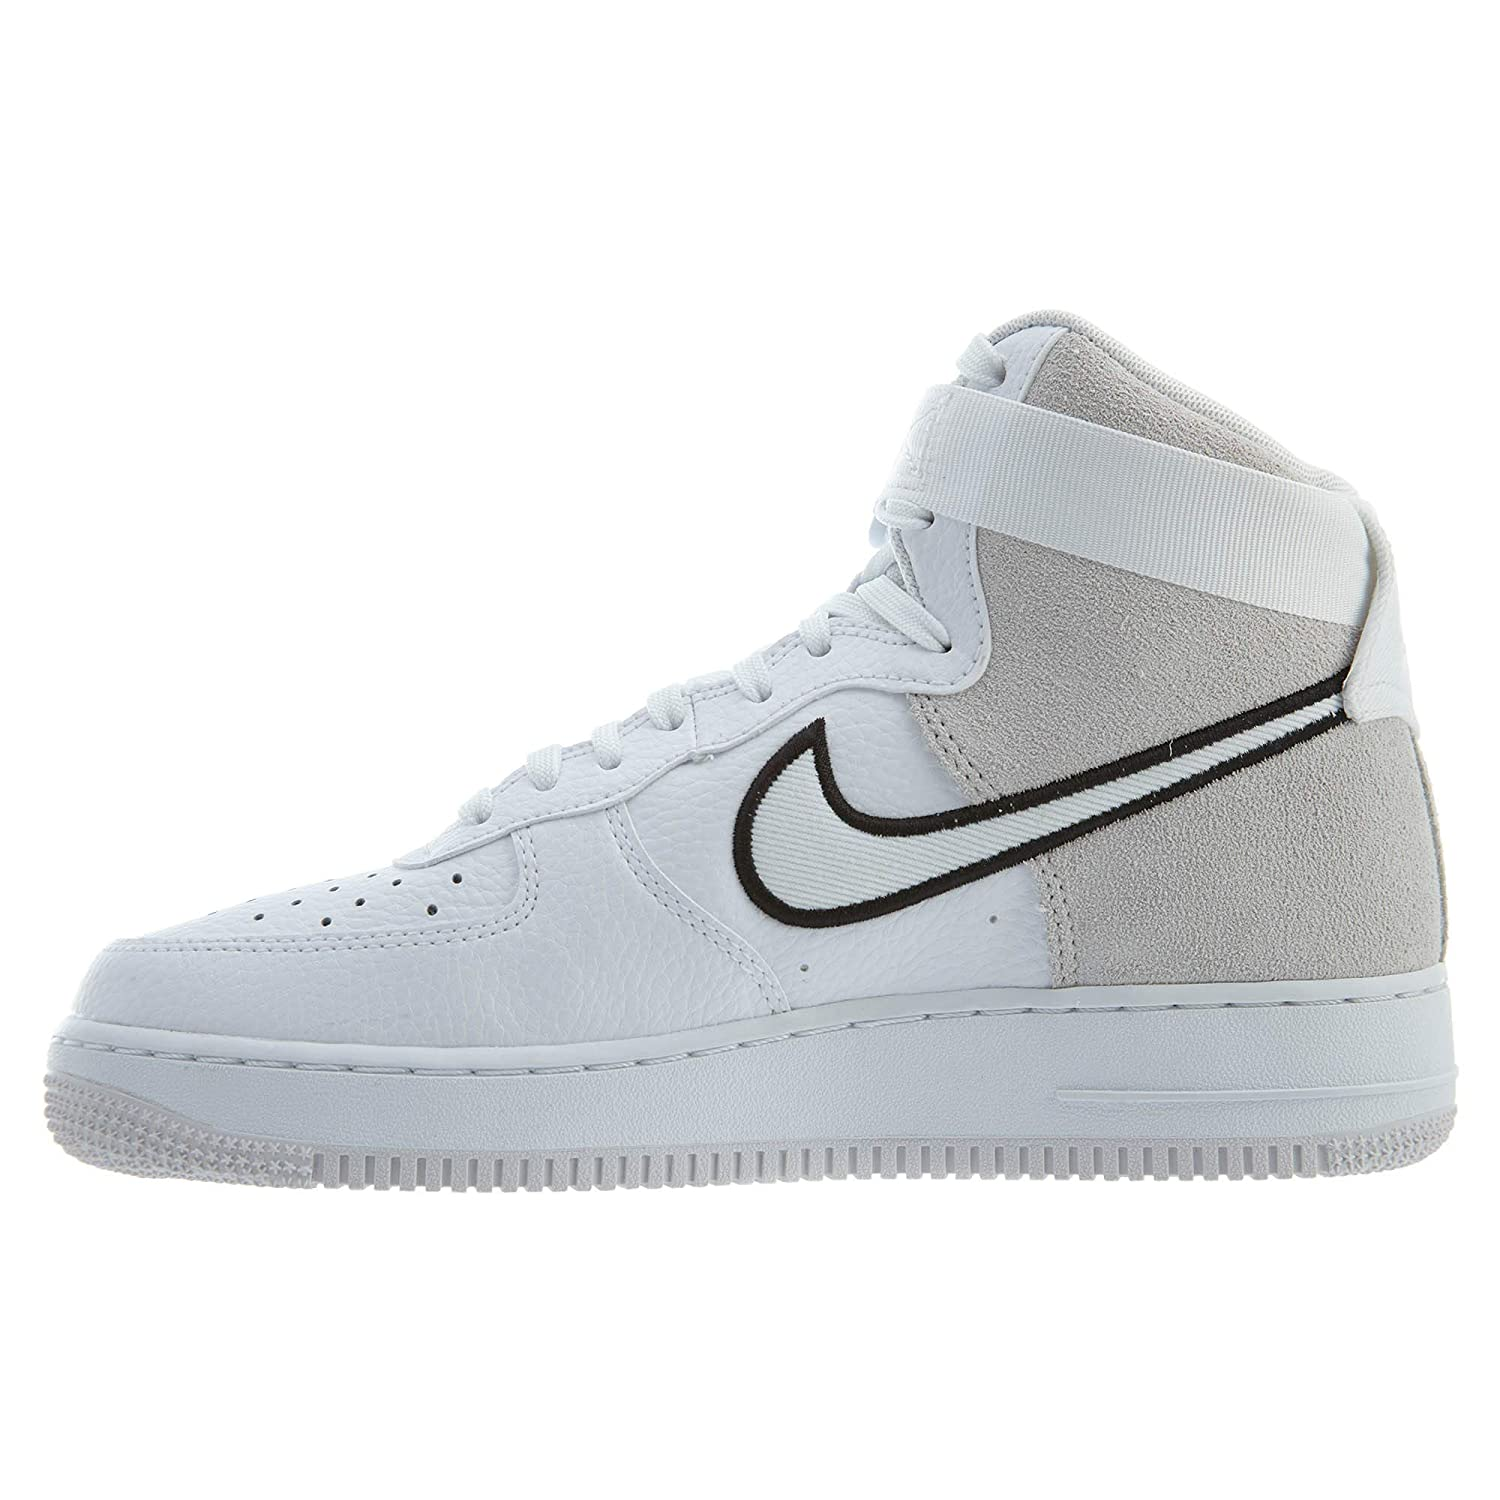 7d21131b2 Amazon.com | Nike Men's Air Force 1 High '07 LV8 1 White/Black/Vast Grey  AO2442-100 | Basketball